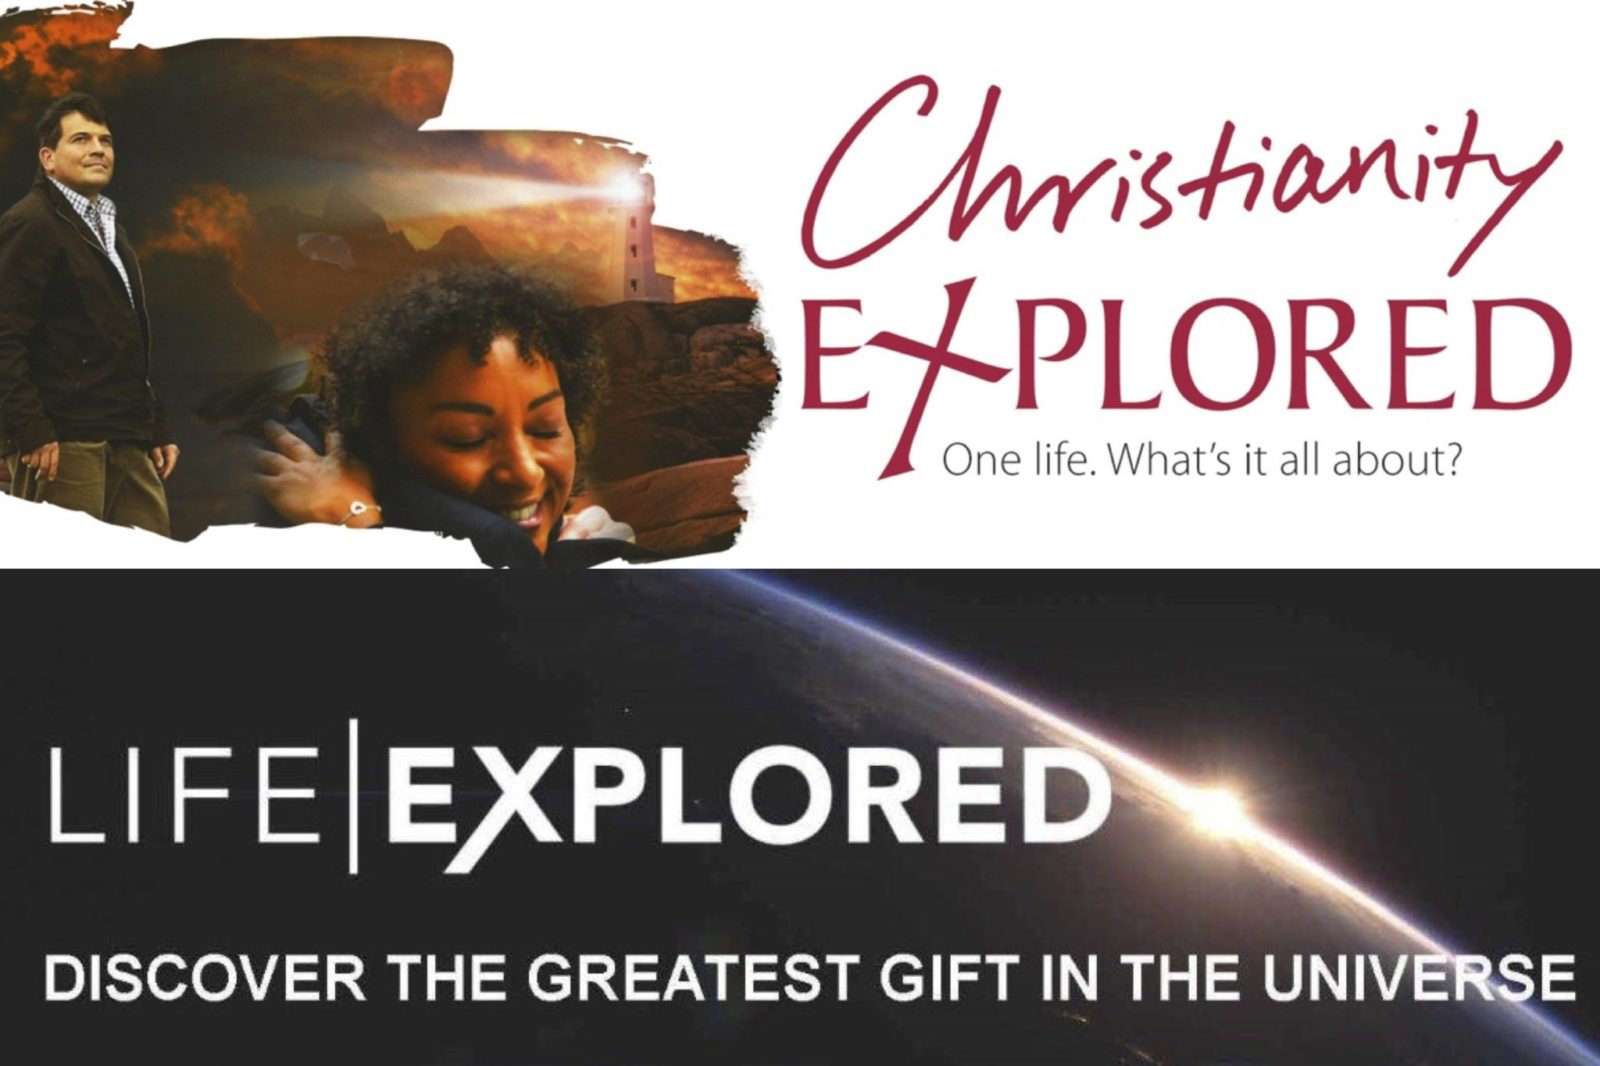 EXPLORE CHRISTIANITY